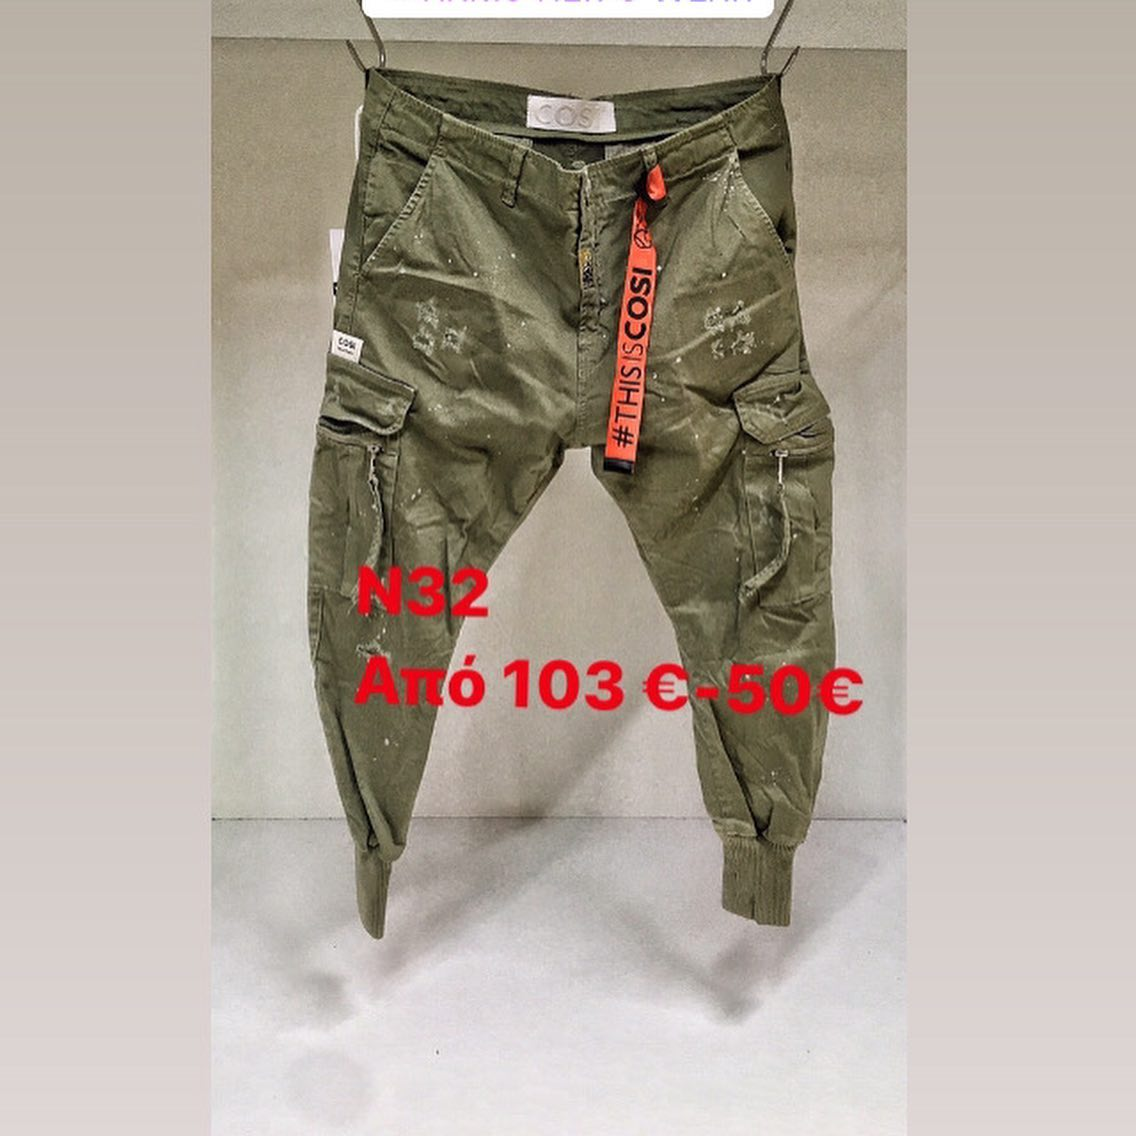 "aria-label=""Trousers"""